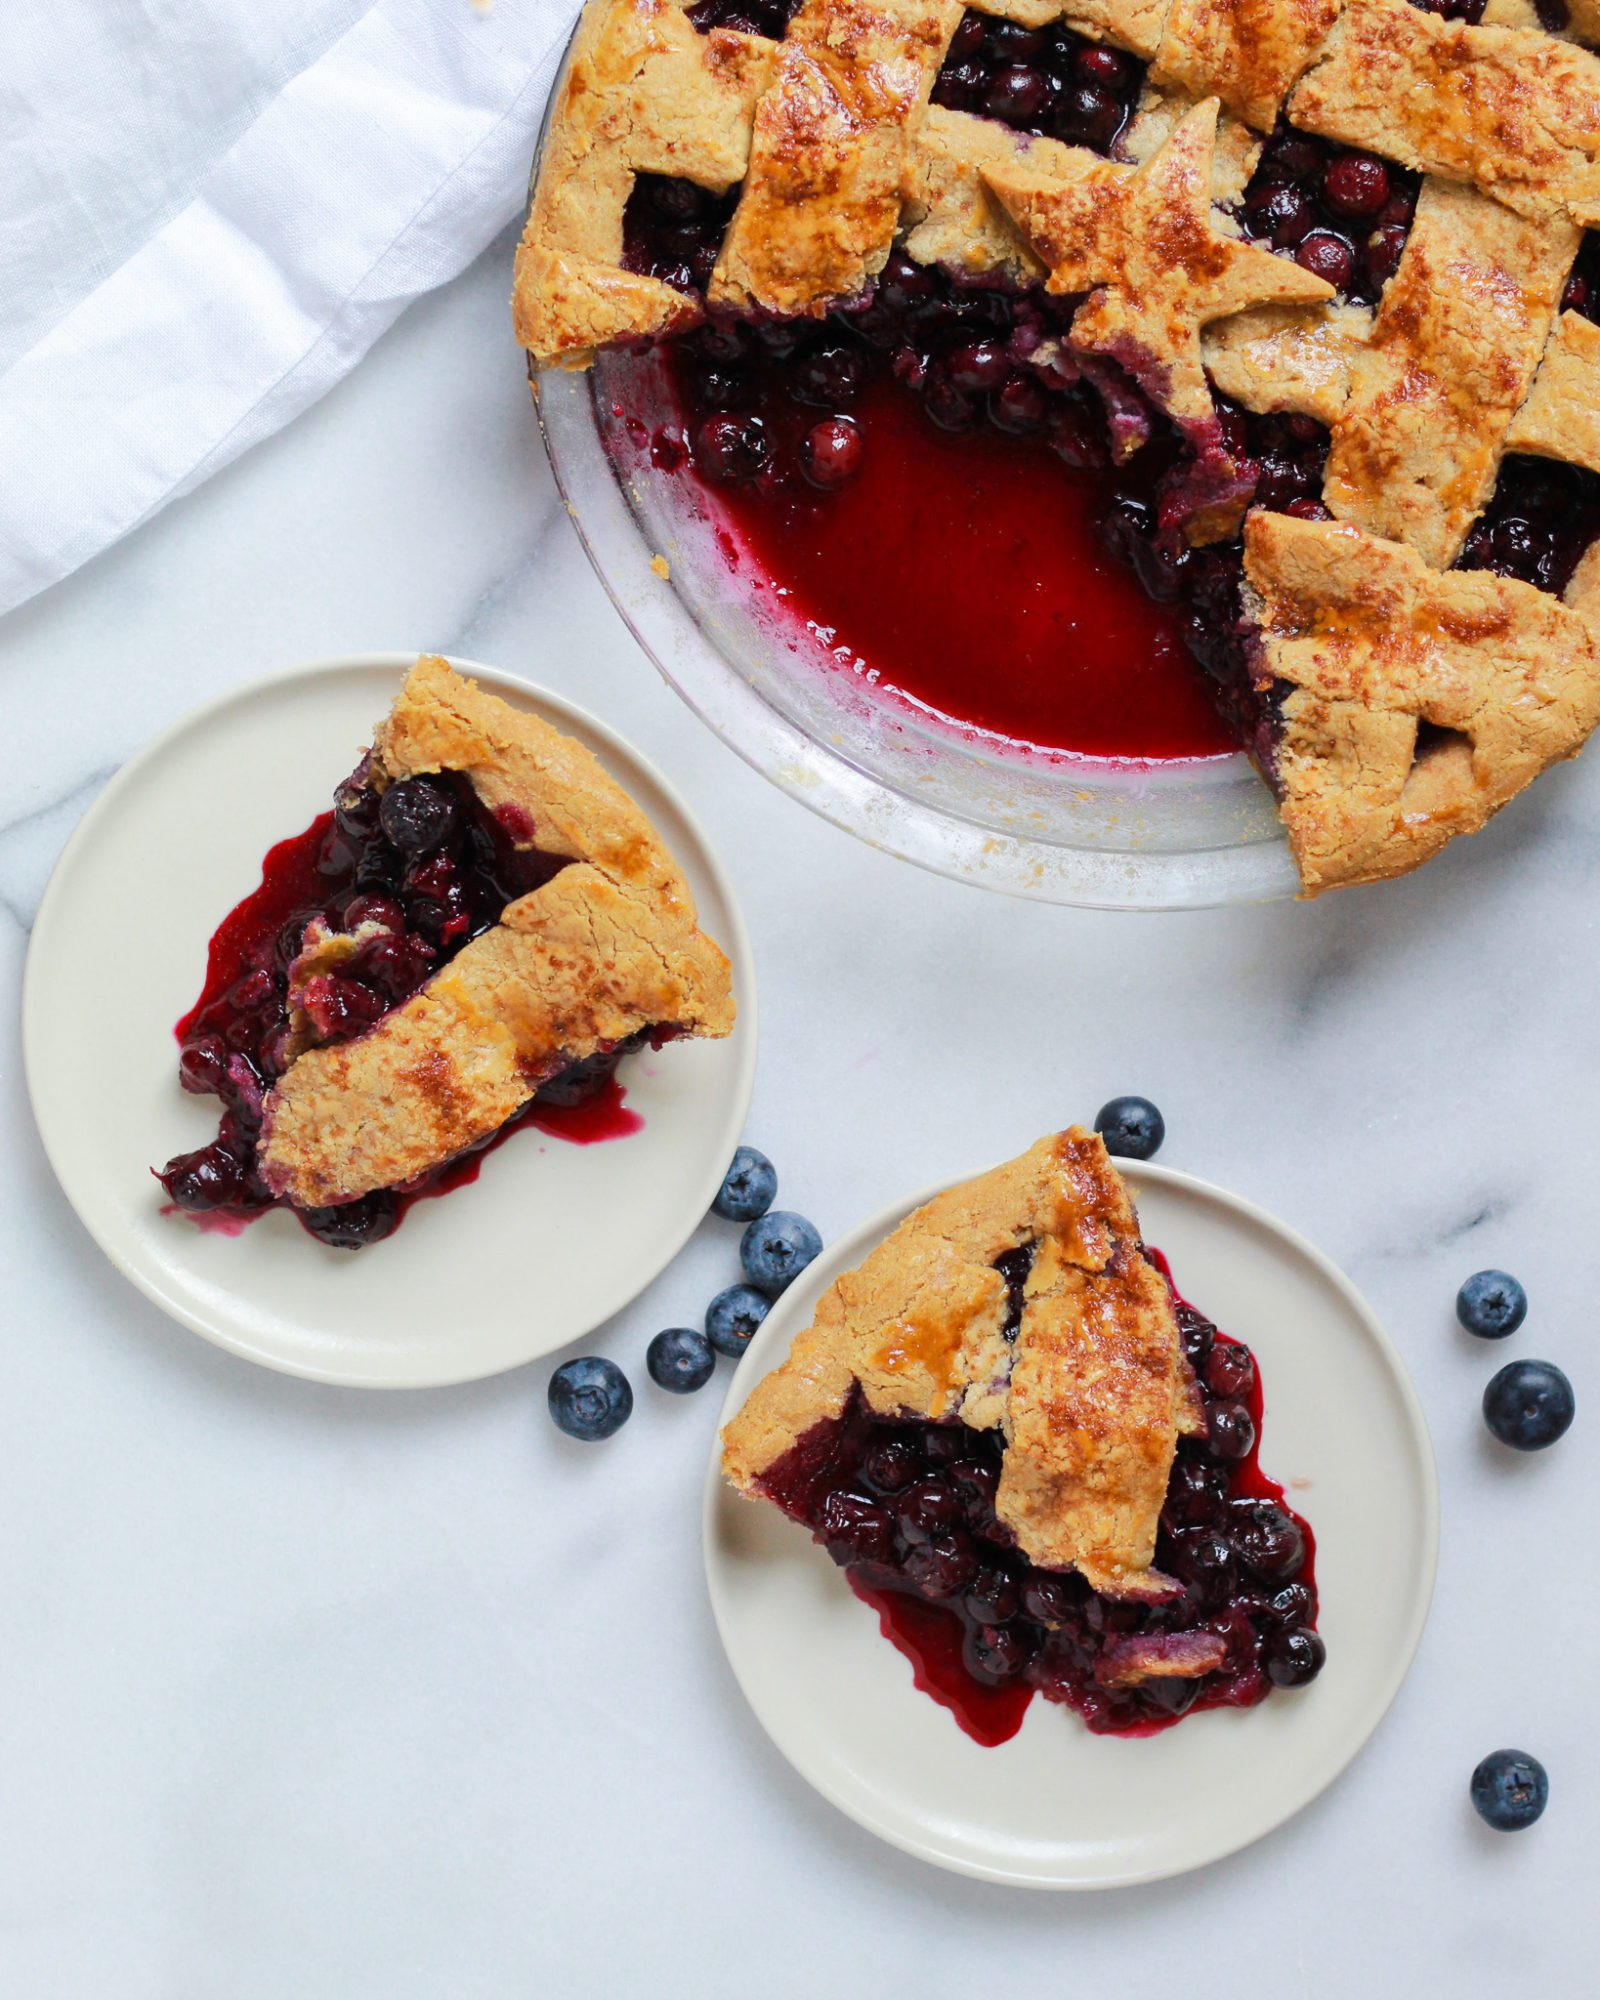 overhead shot of two slices of blueberry pie with full blueberry pie